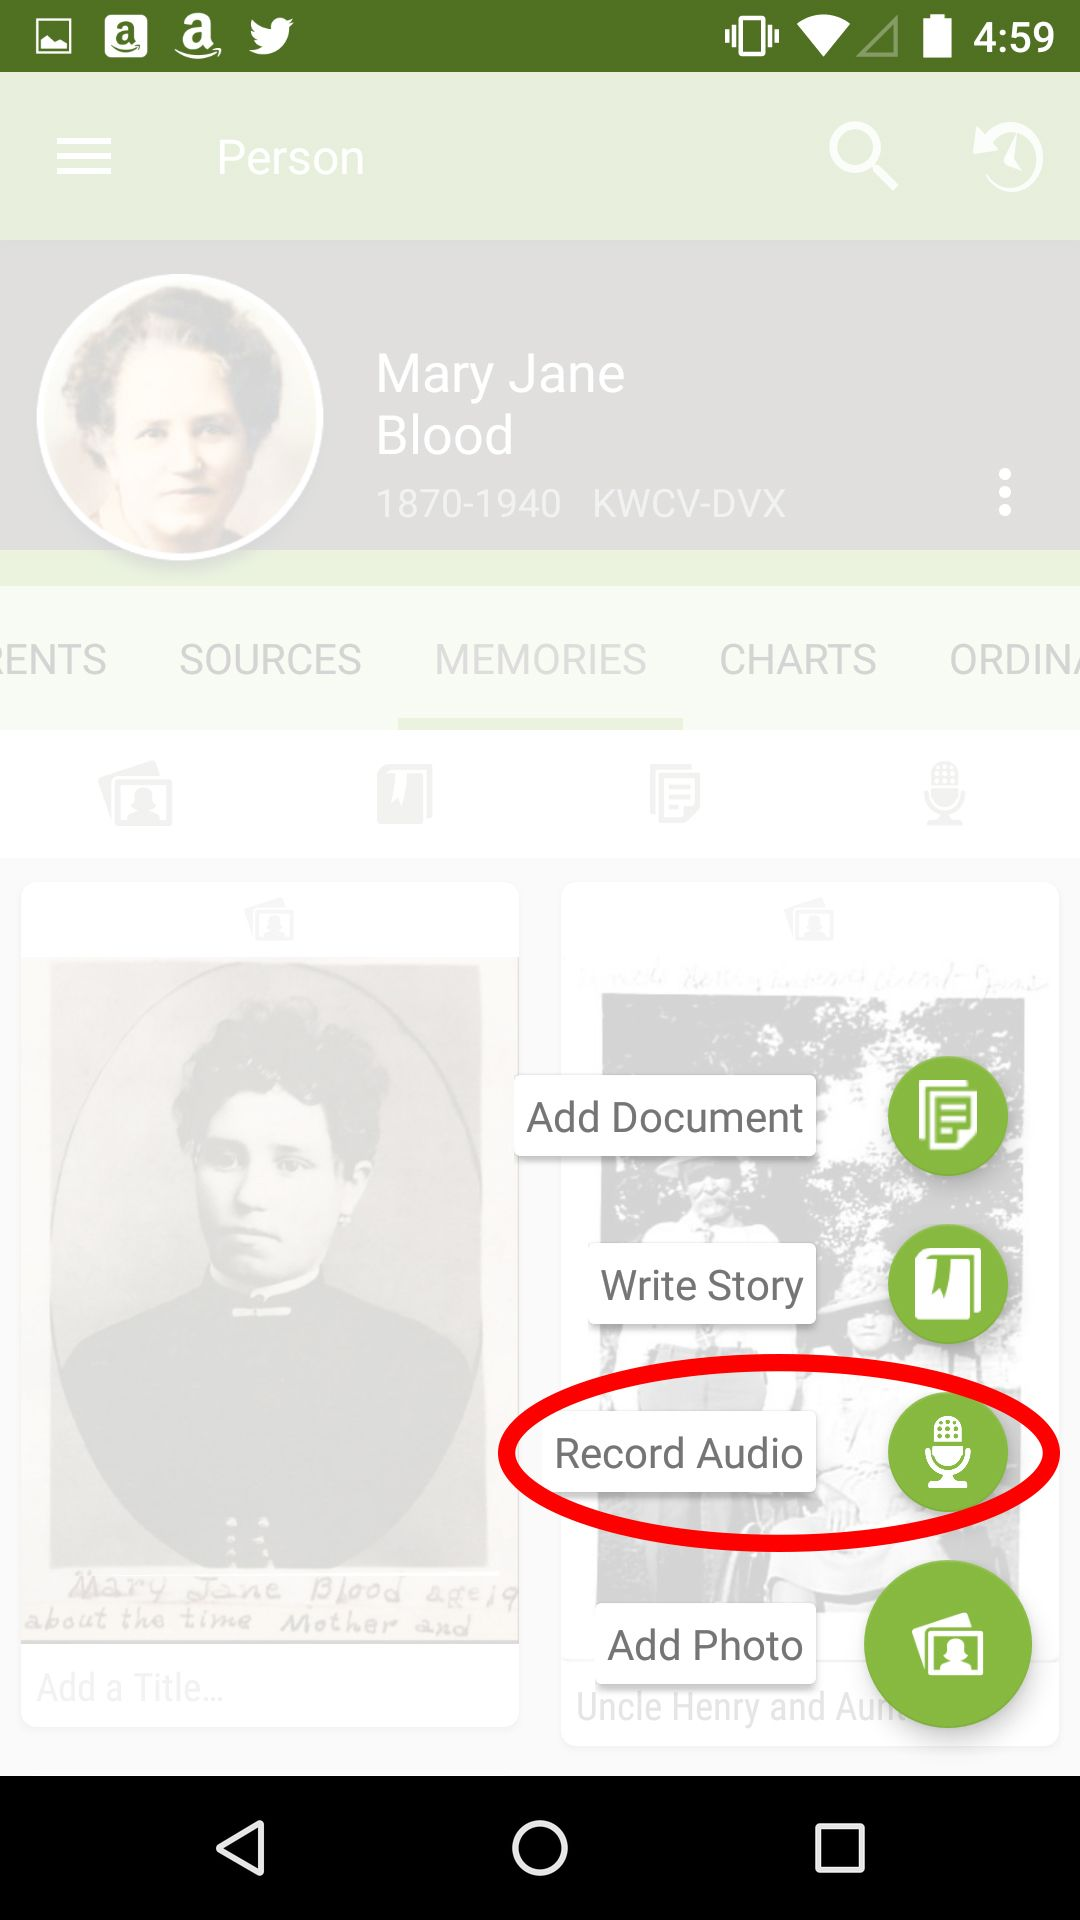 Using FamilySearch Apps to Record Oral Histories | Family History